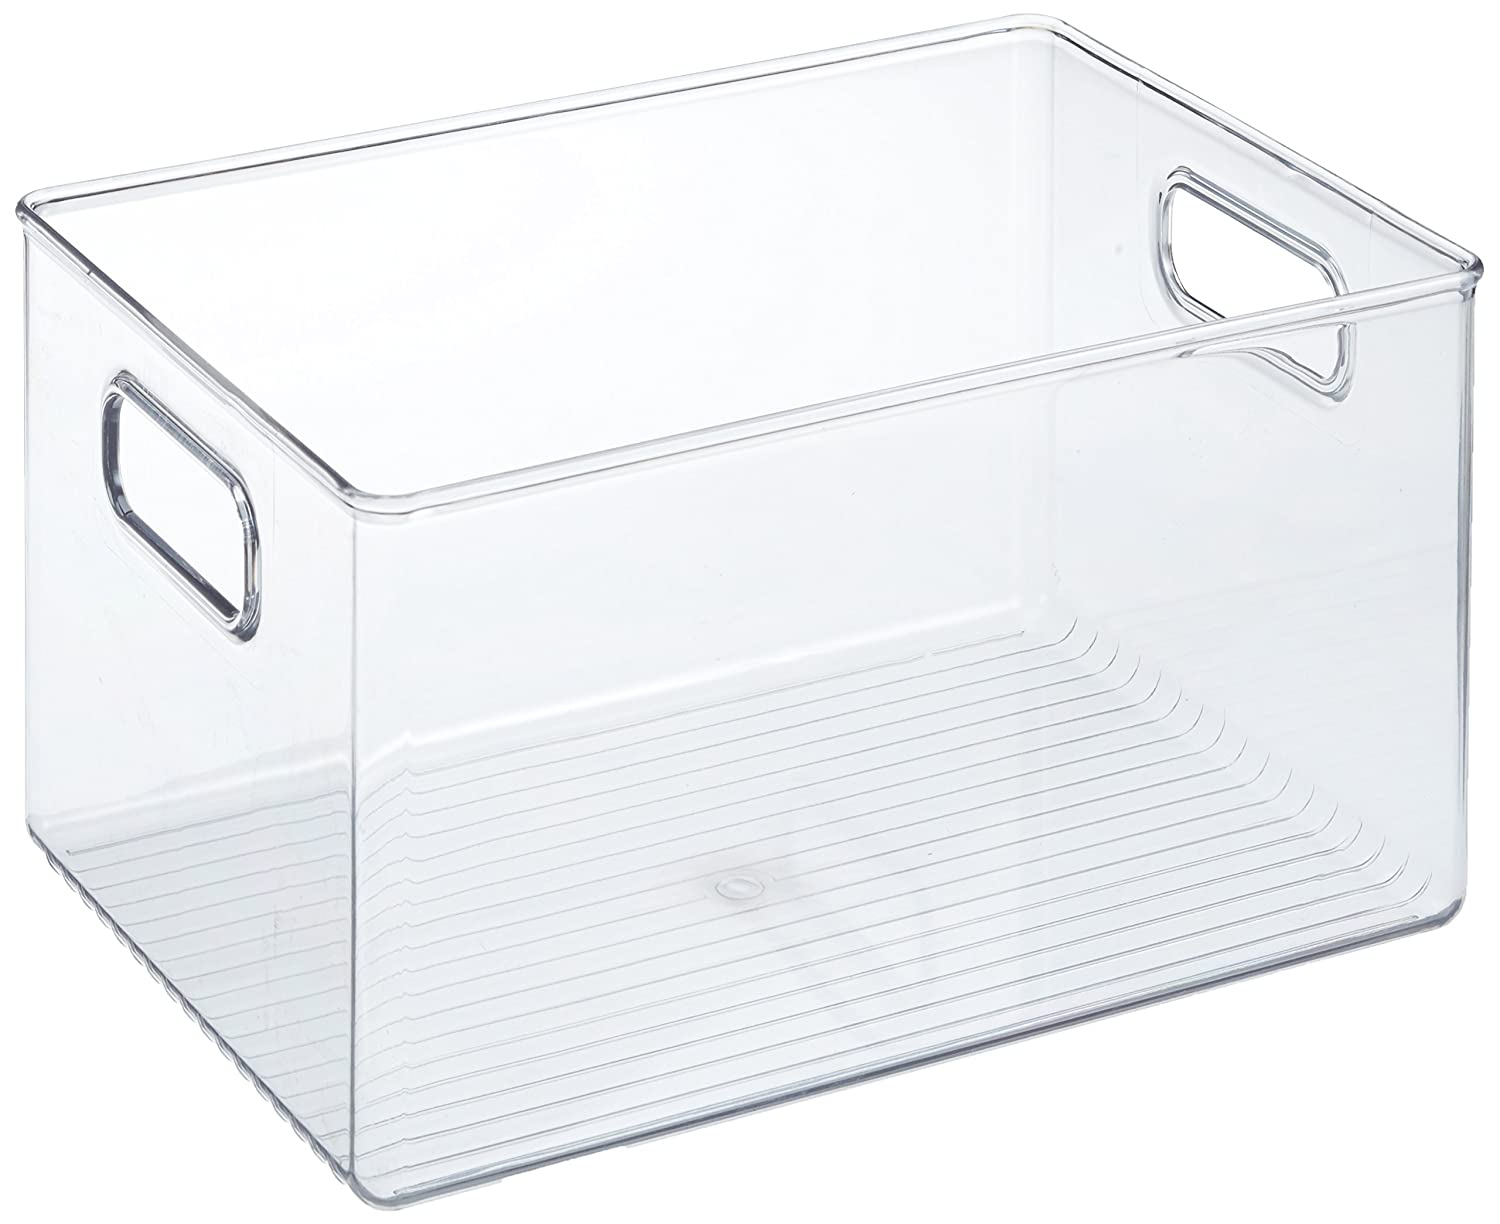 InterDesign Linus Fridge and Cupboard, Kitchen Storage Box with Handles, Plastic, Clear, Large 71938EU